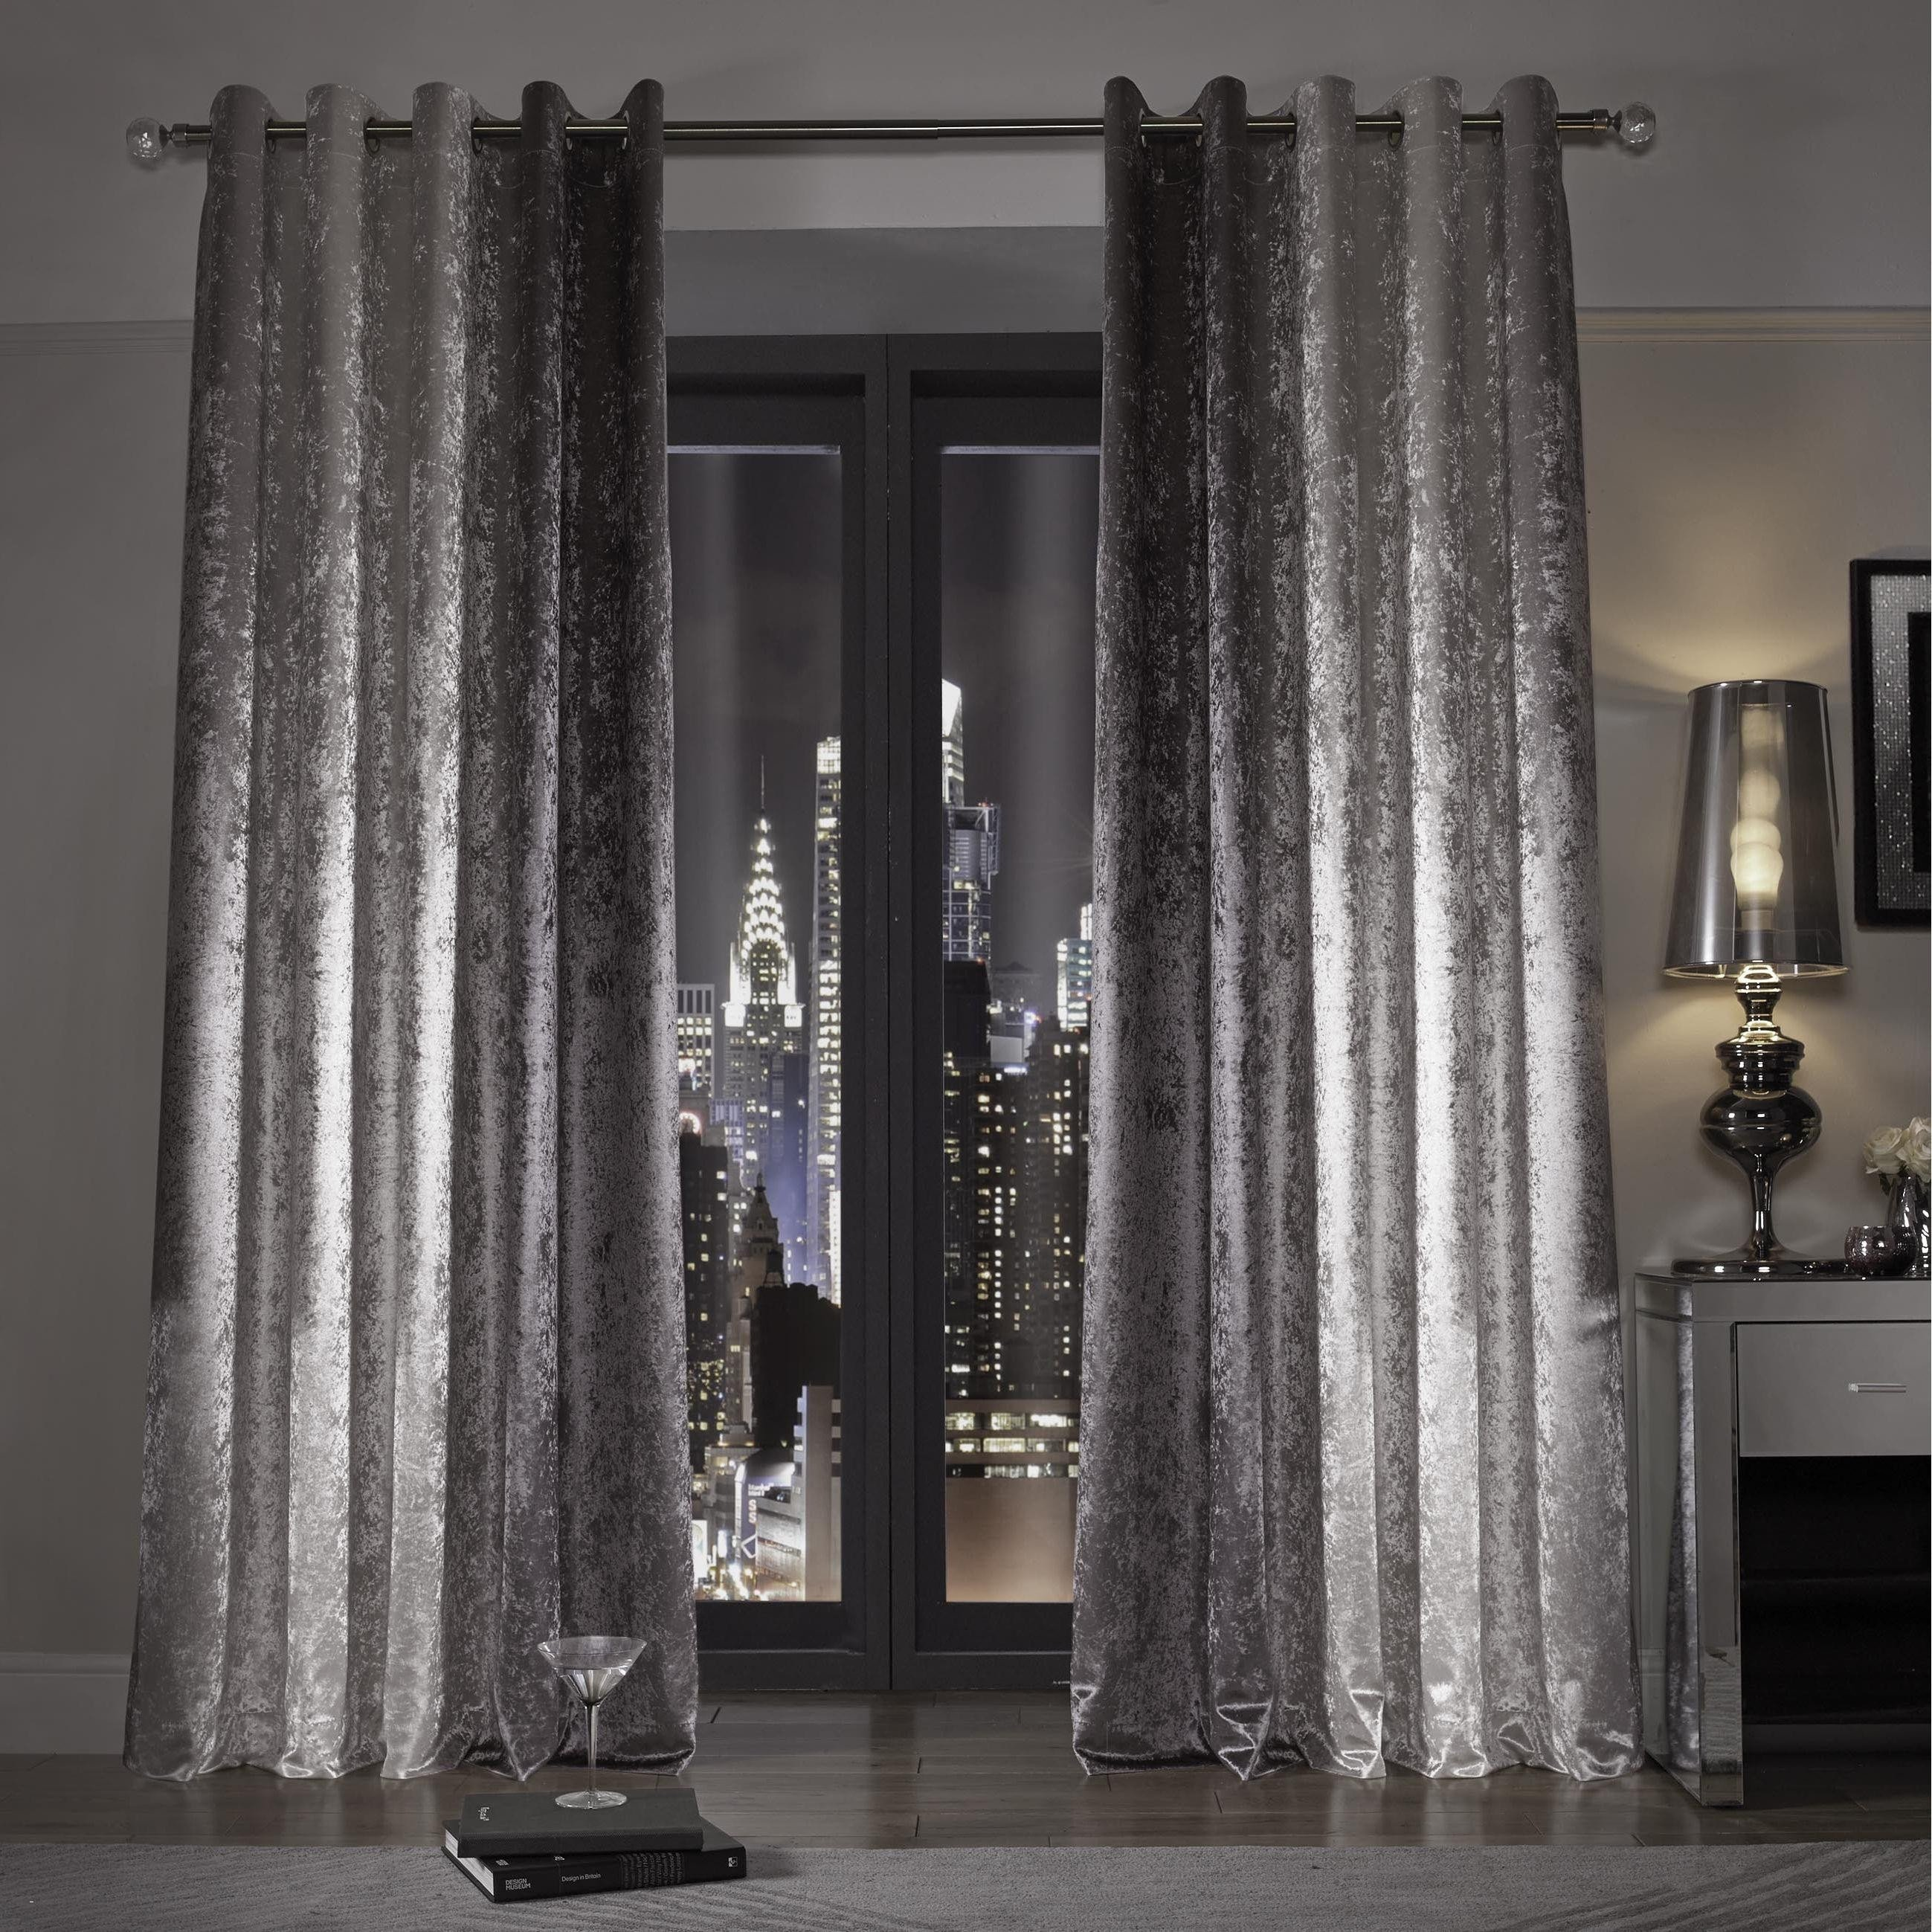 Bedroom Curtains and Drapes Lovely 21 Amazing Window Sill Vases